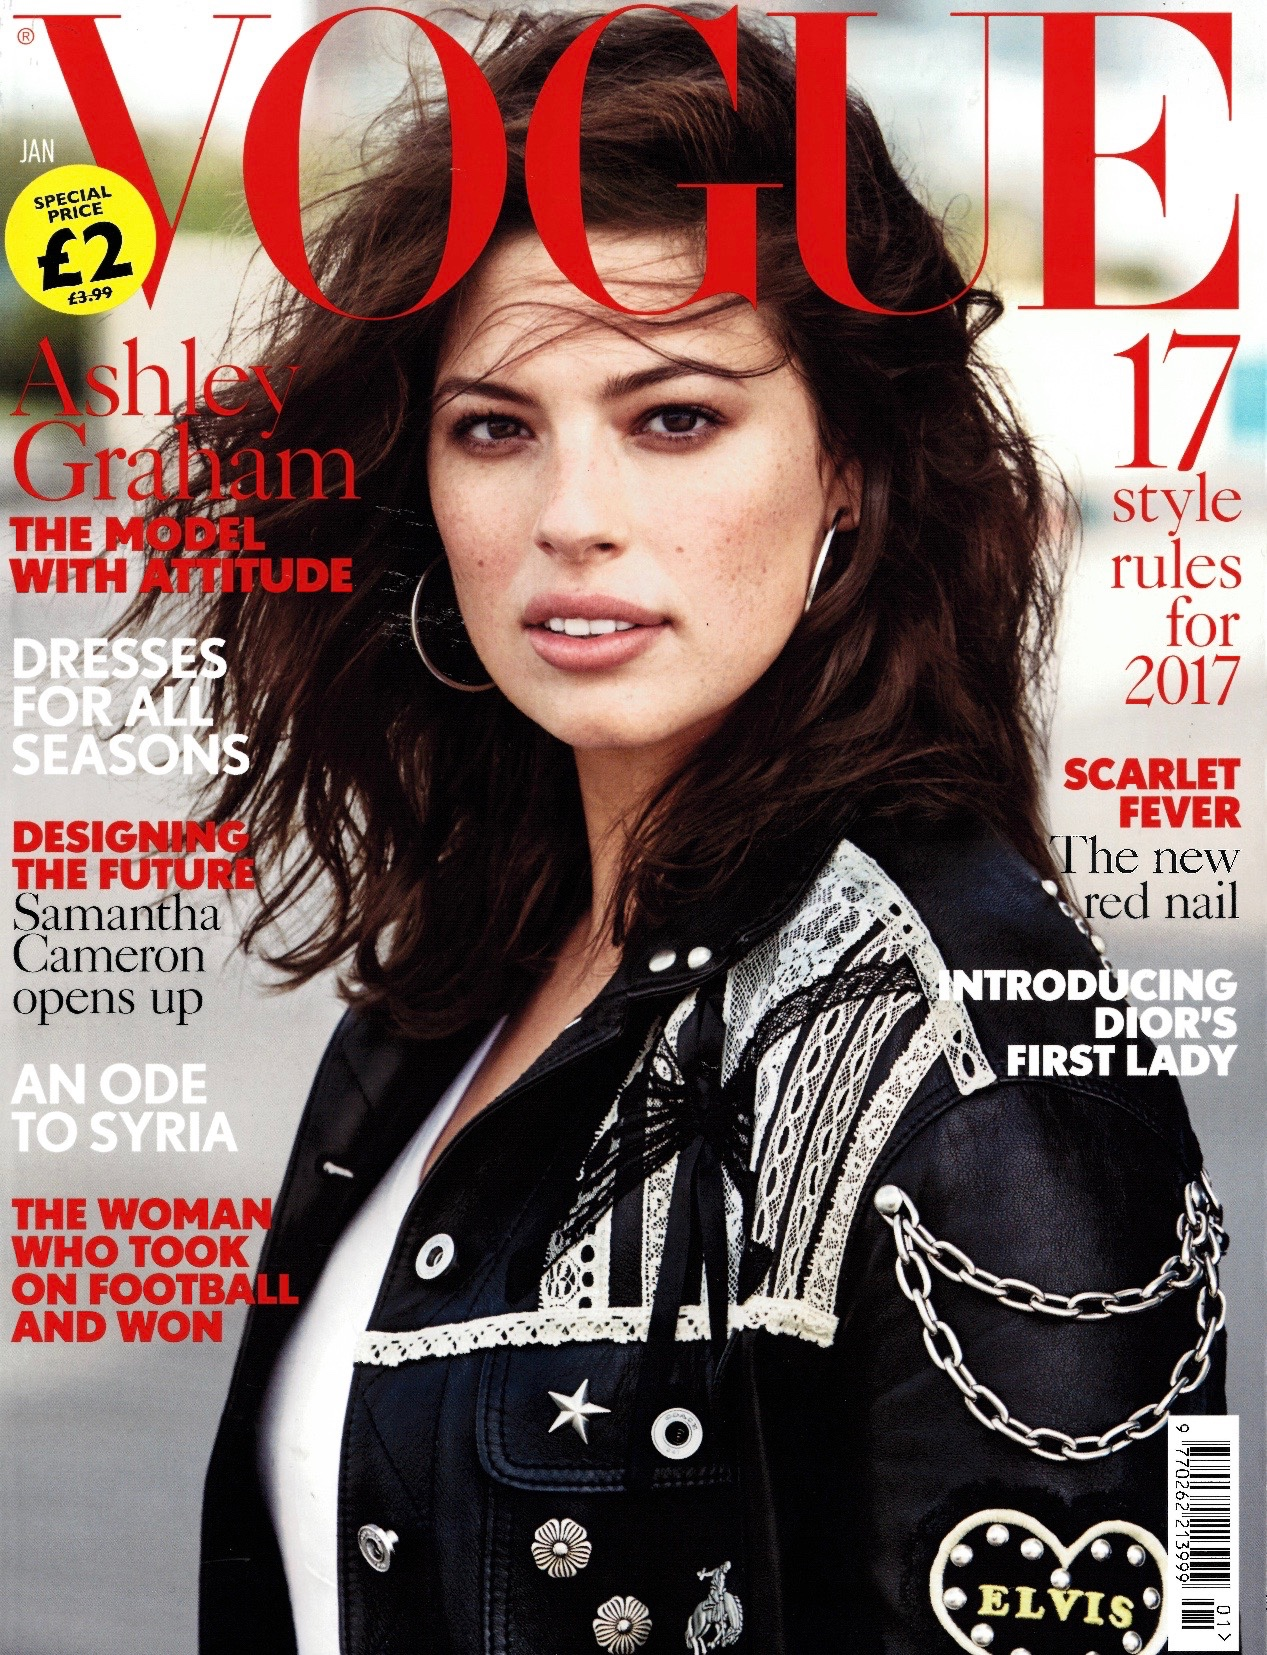 January Issue Vogue Cover.jpg